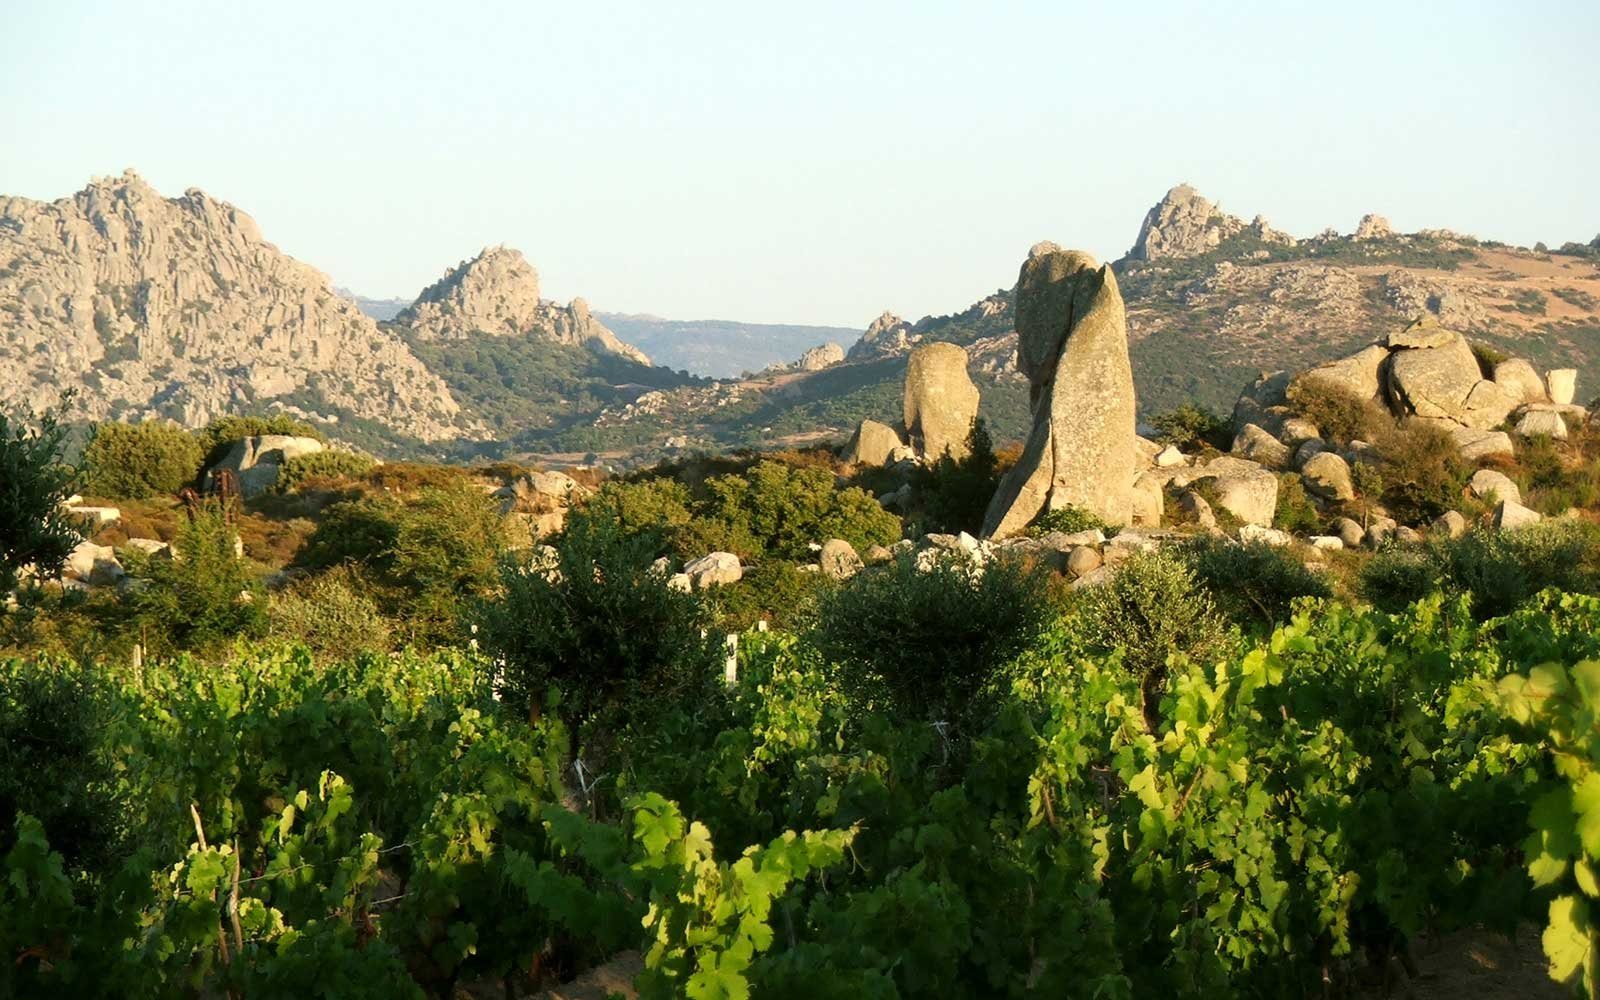 The Valley Of The Moon  - an amazing landscape on the Italian island of Sardinia